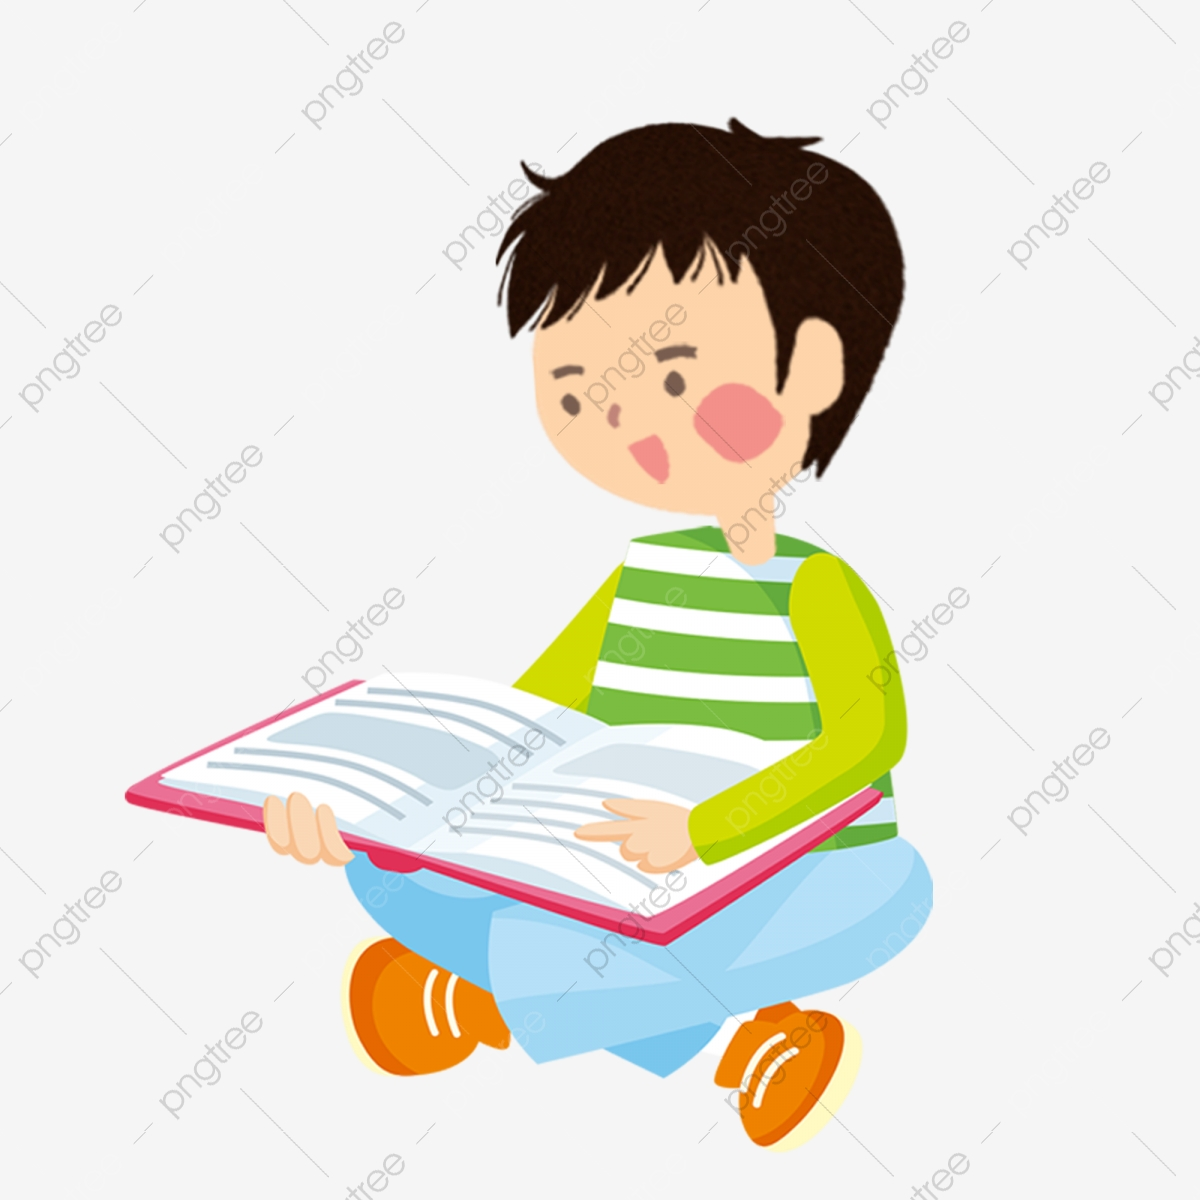 hight resolution of  book clipart png image copyright complaint